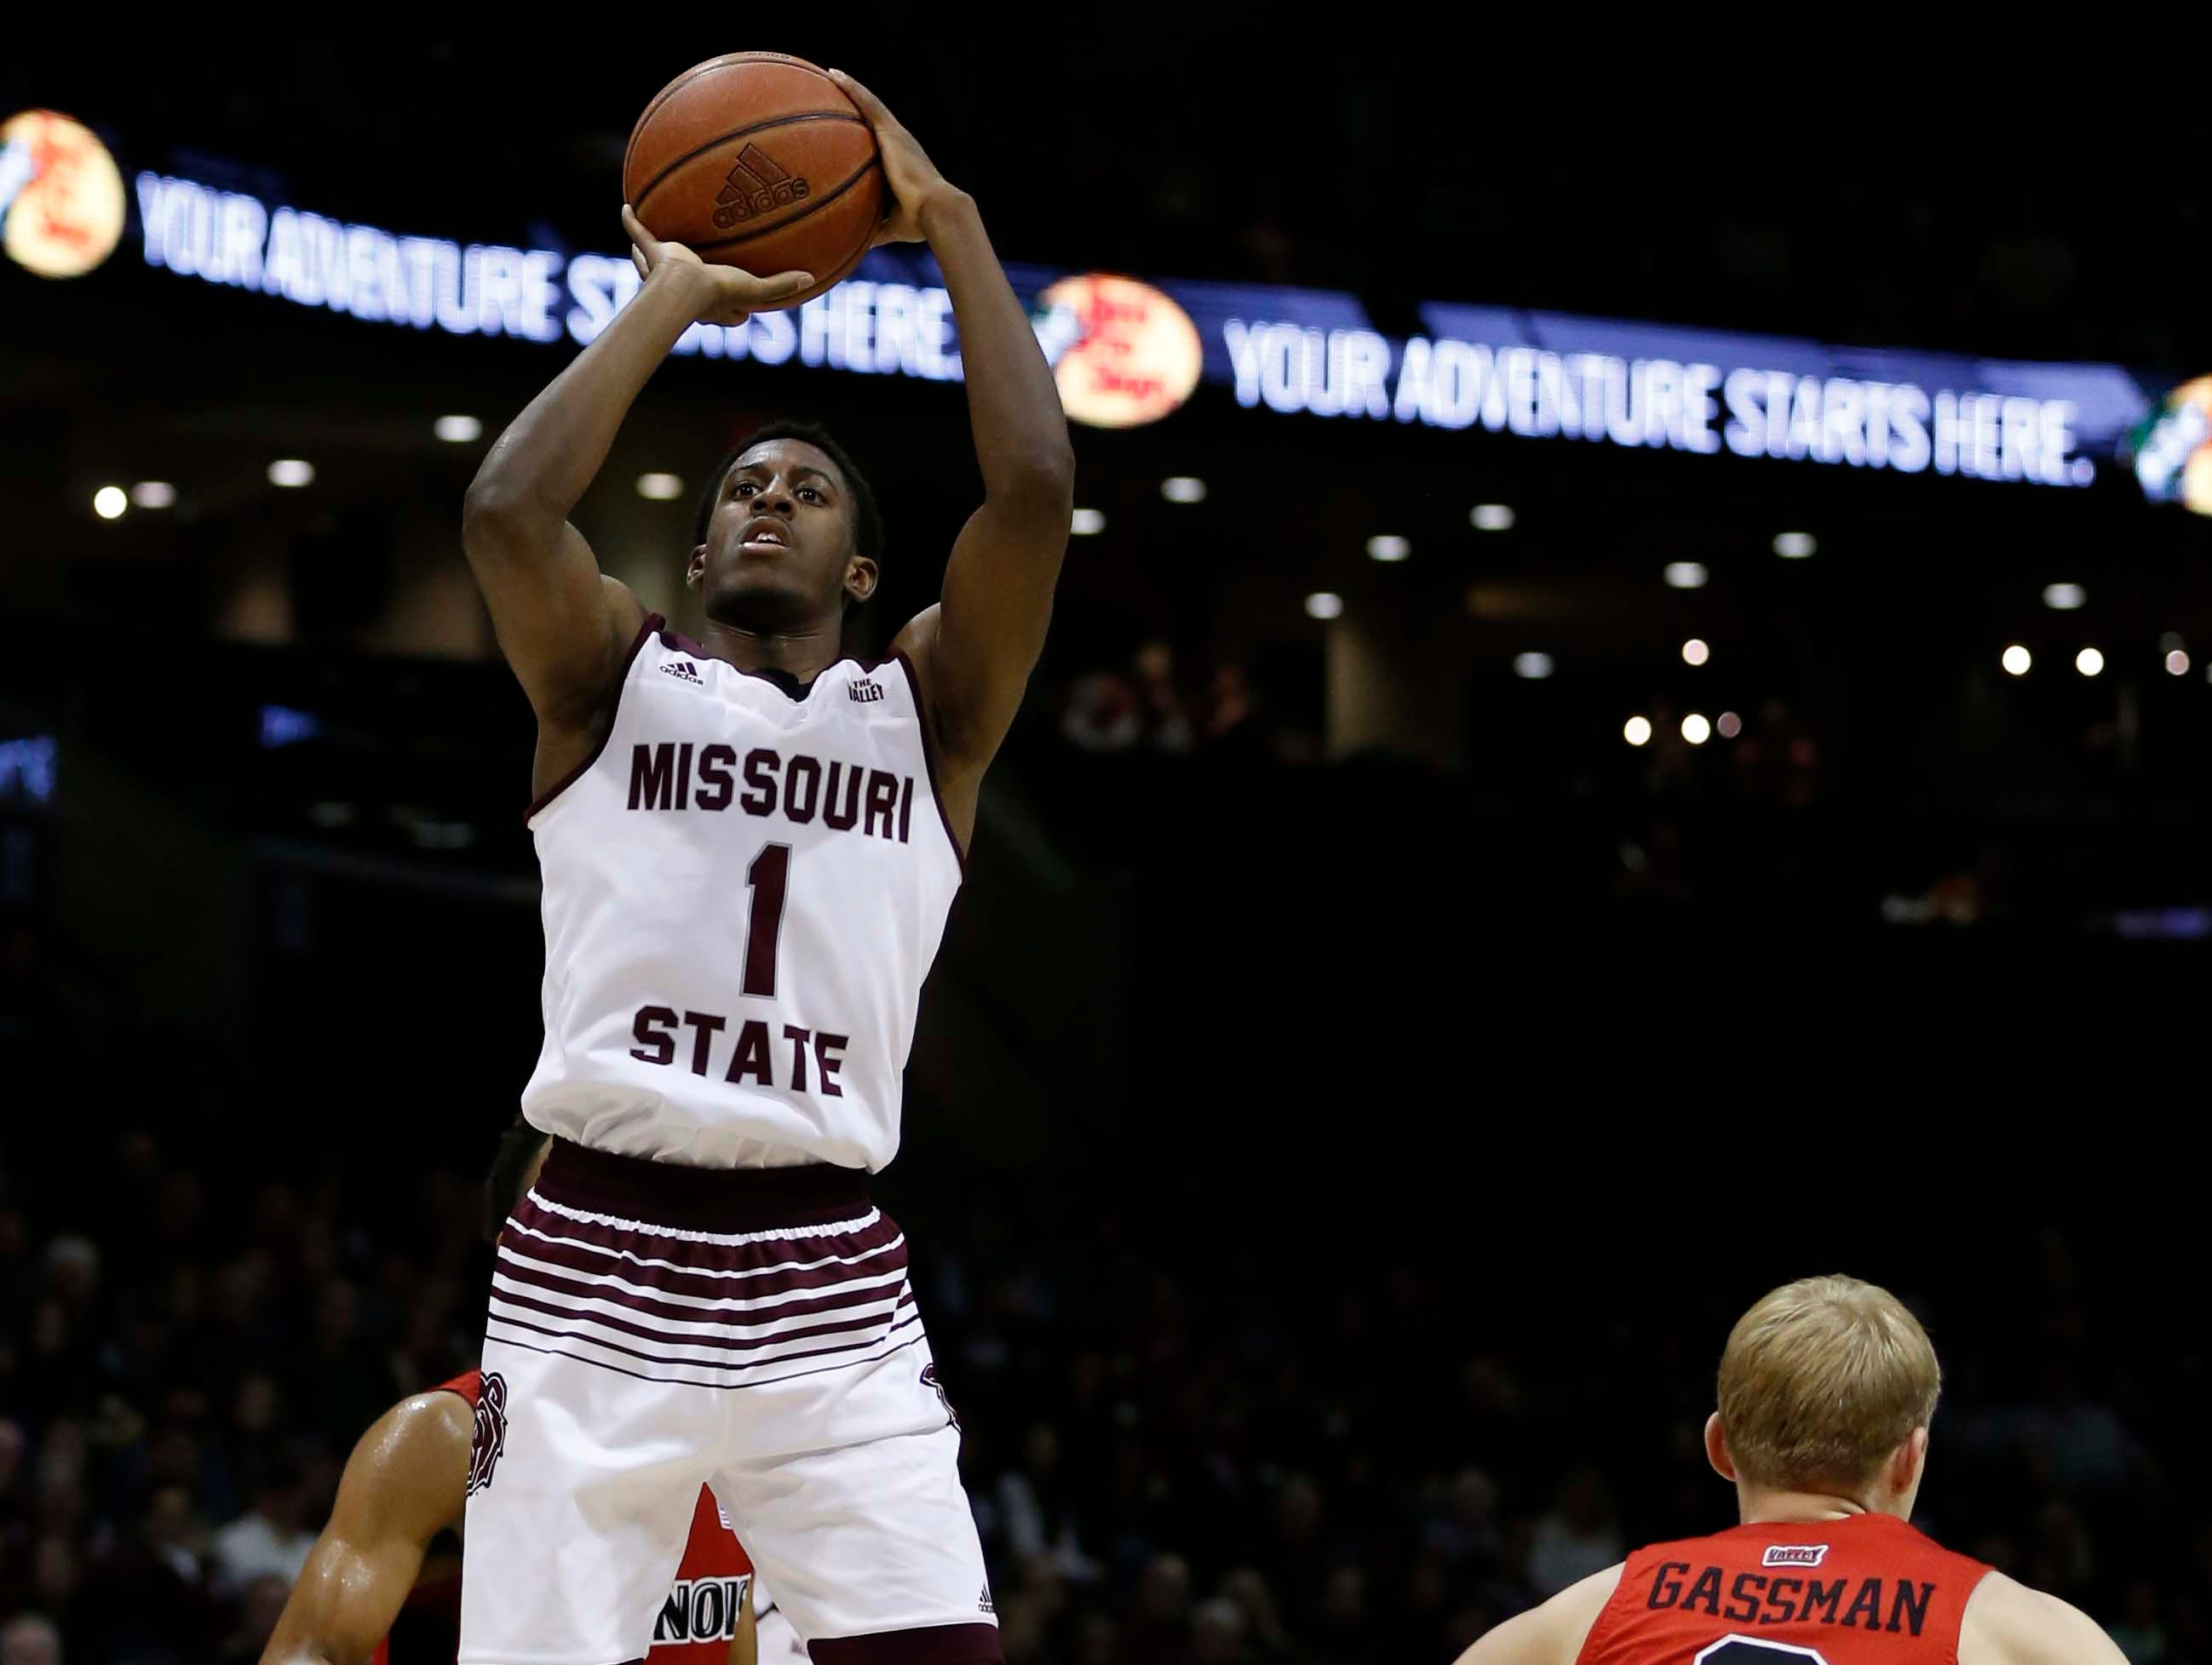 Missouri State's Keandre Cook shoots against the Illinois State Redbirds at JQH Arena in Springfield on February 10, 2019.